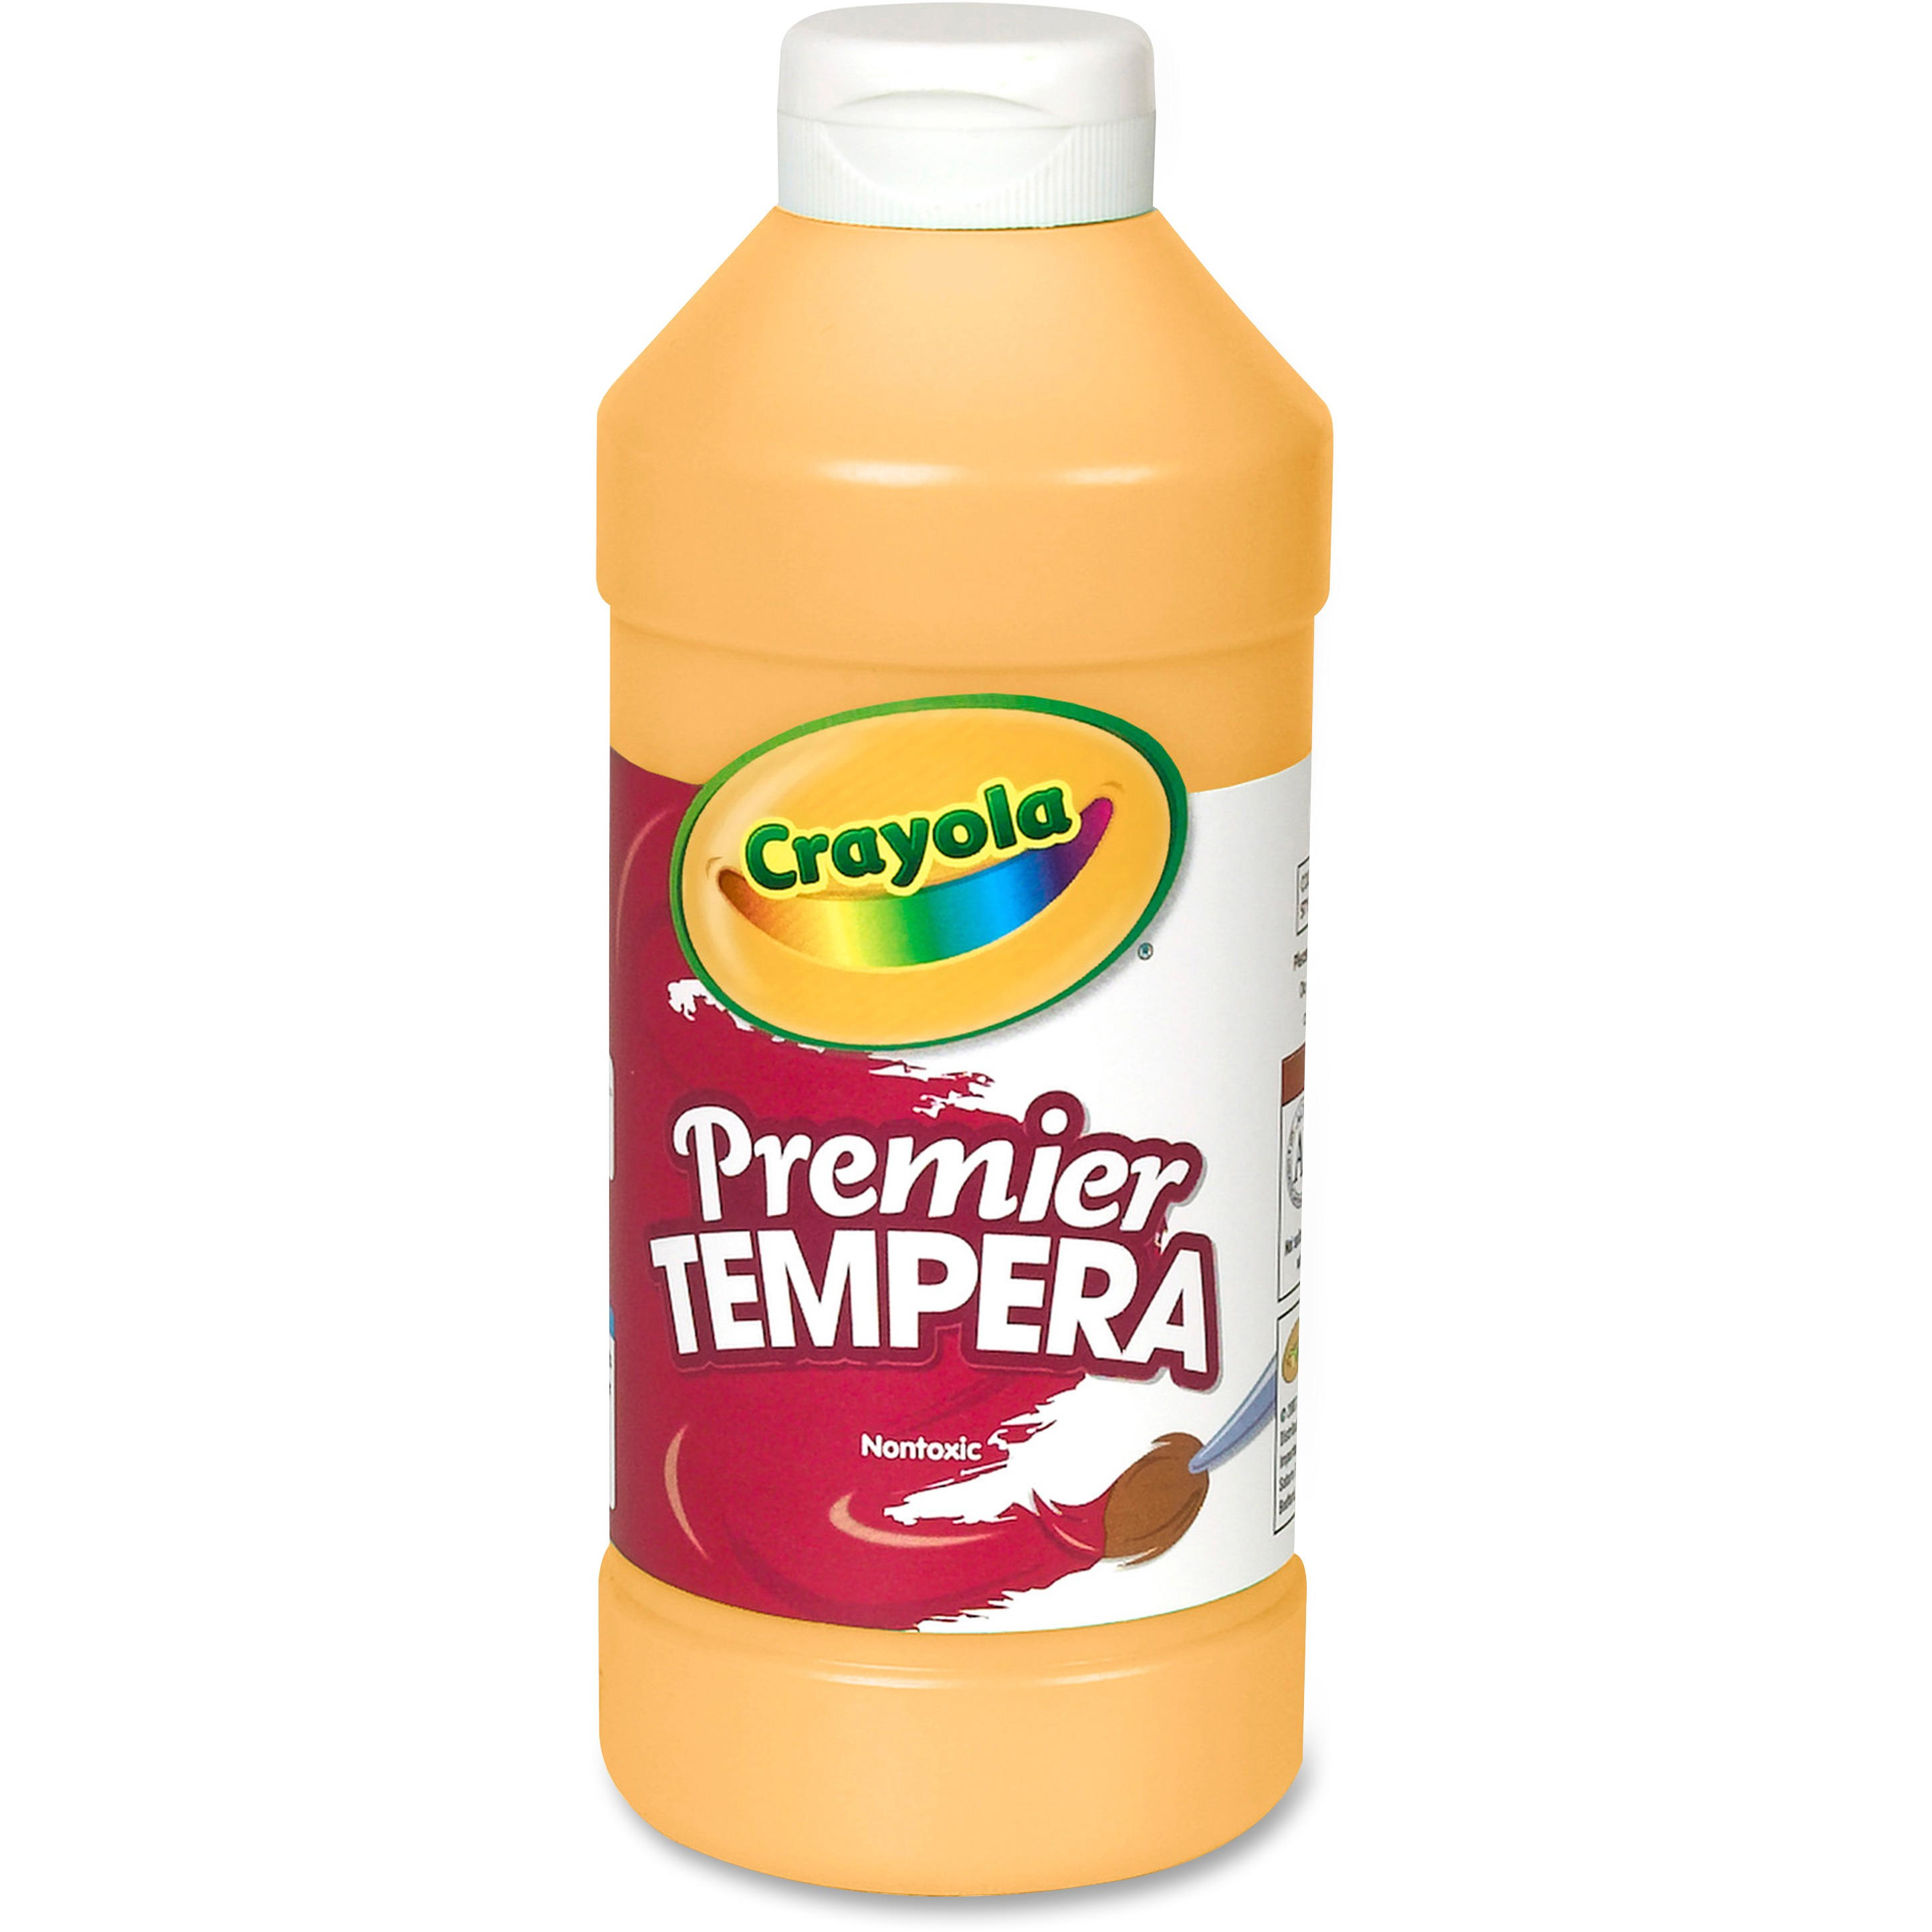 Crayola Premier Tempera Paint, 16 Oz